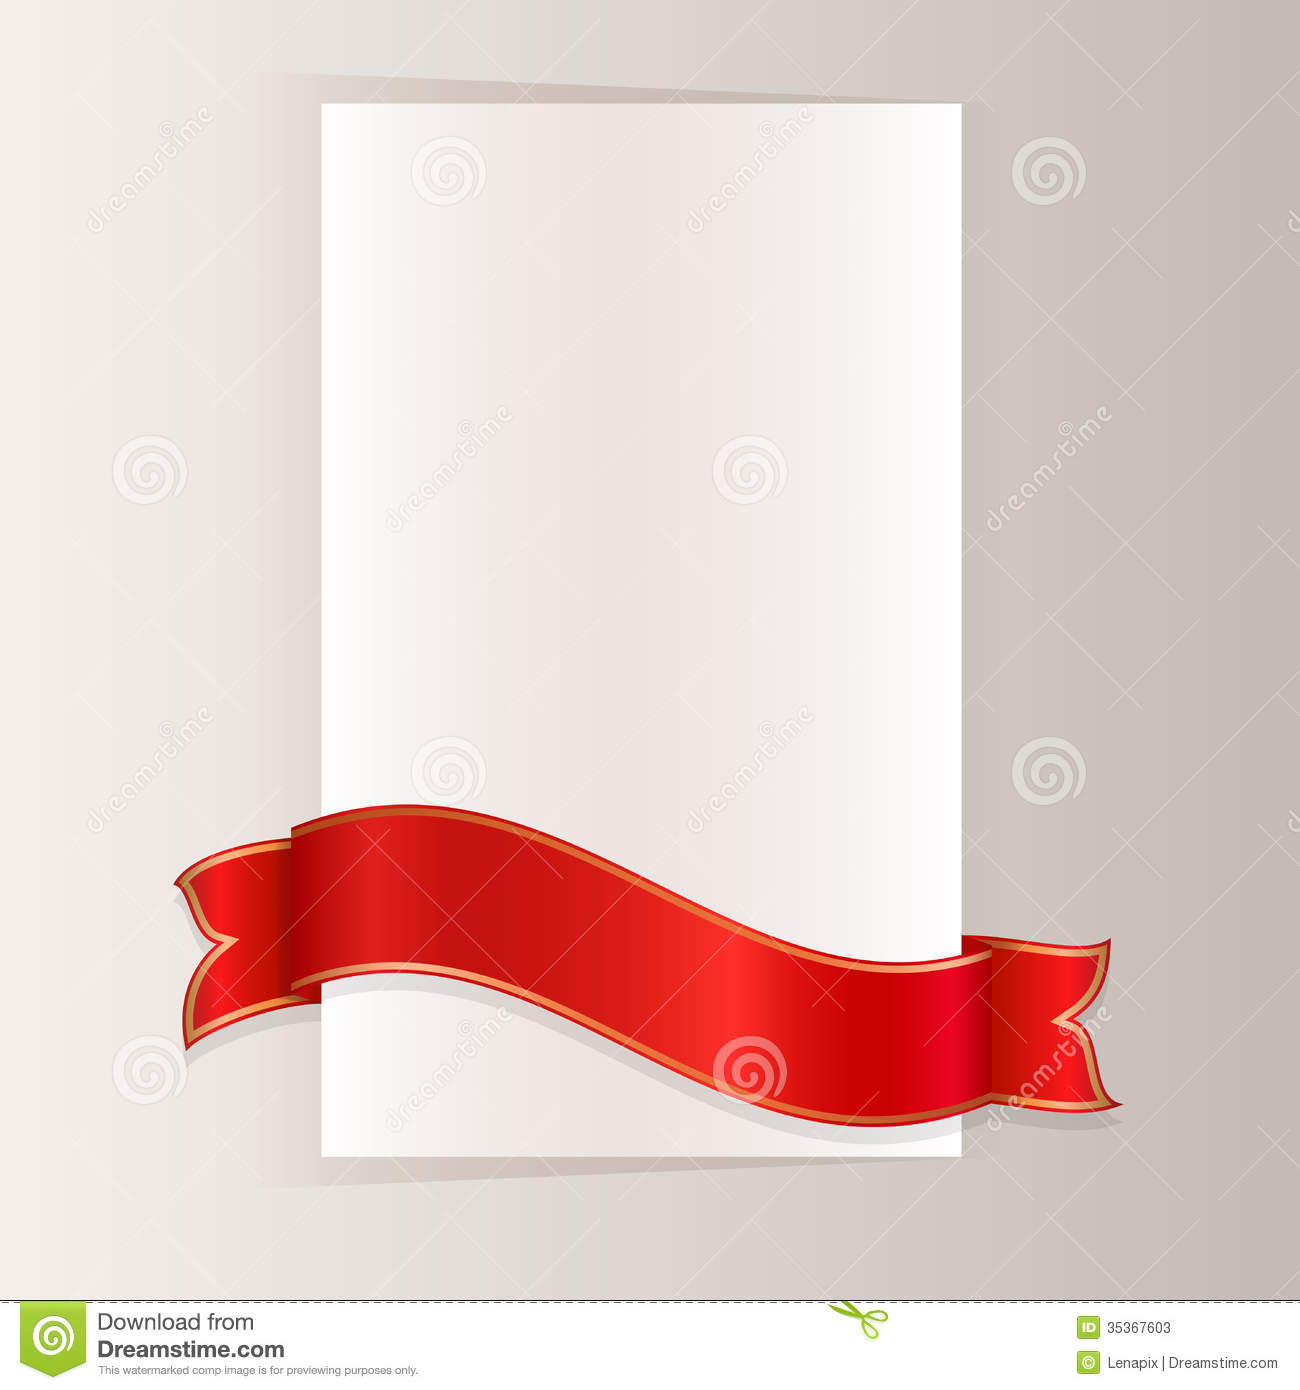 red ribbon template stock vector illustration of notice 35367603